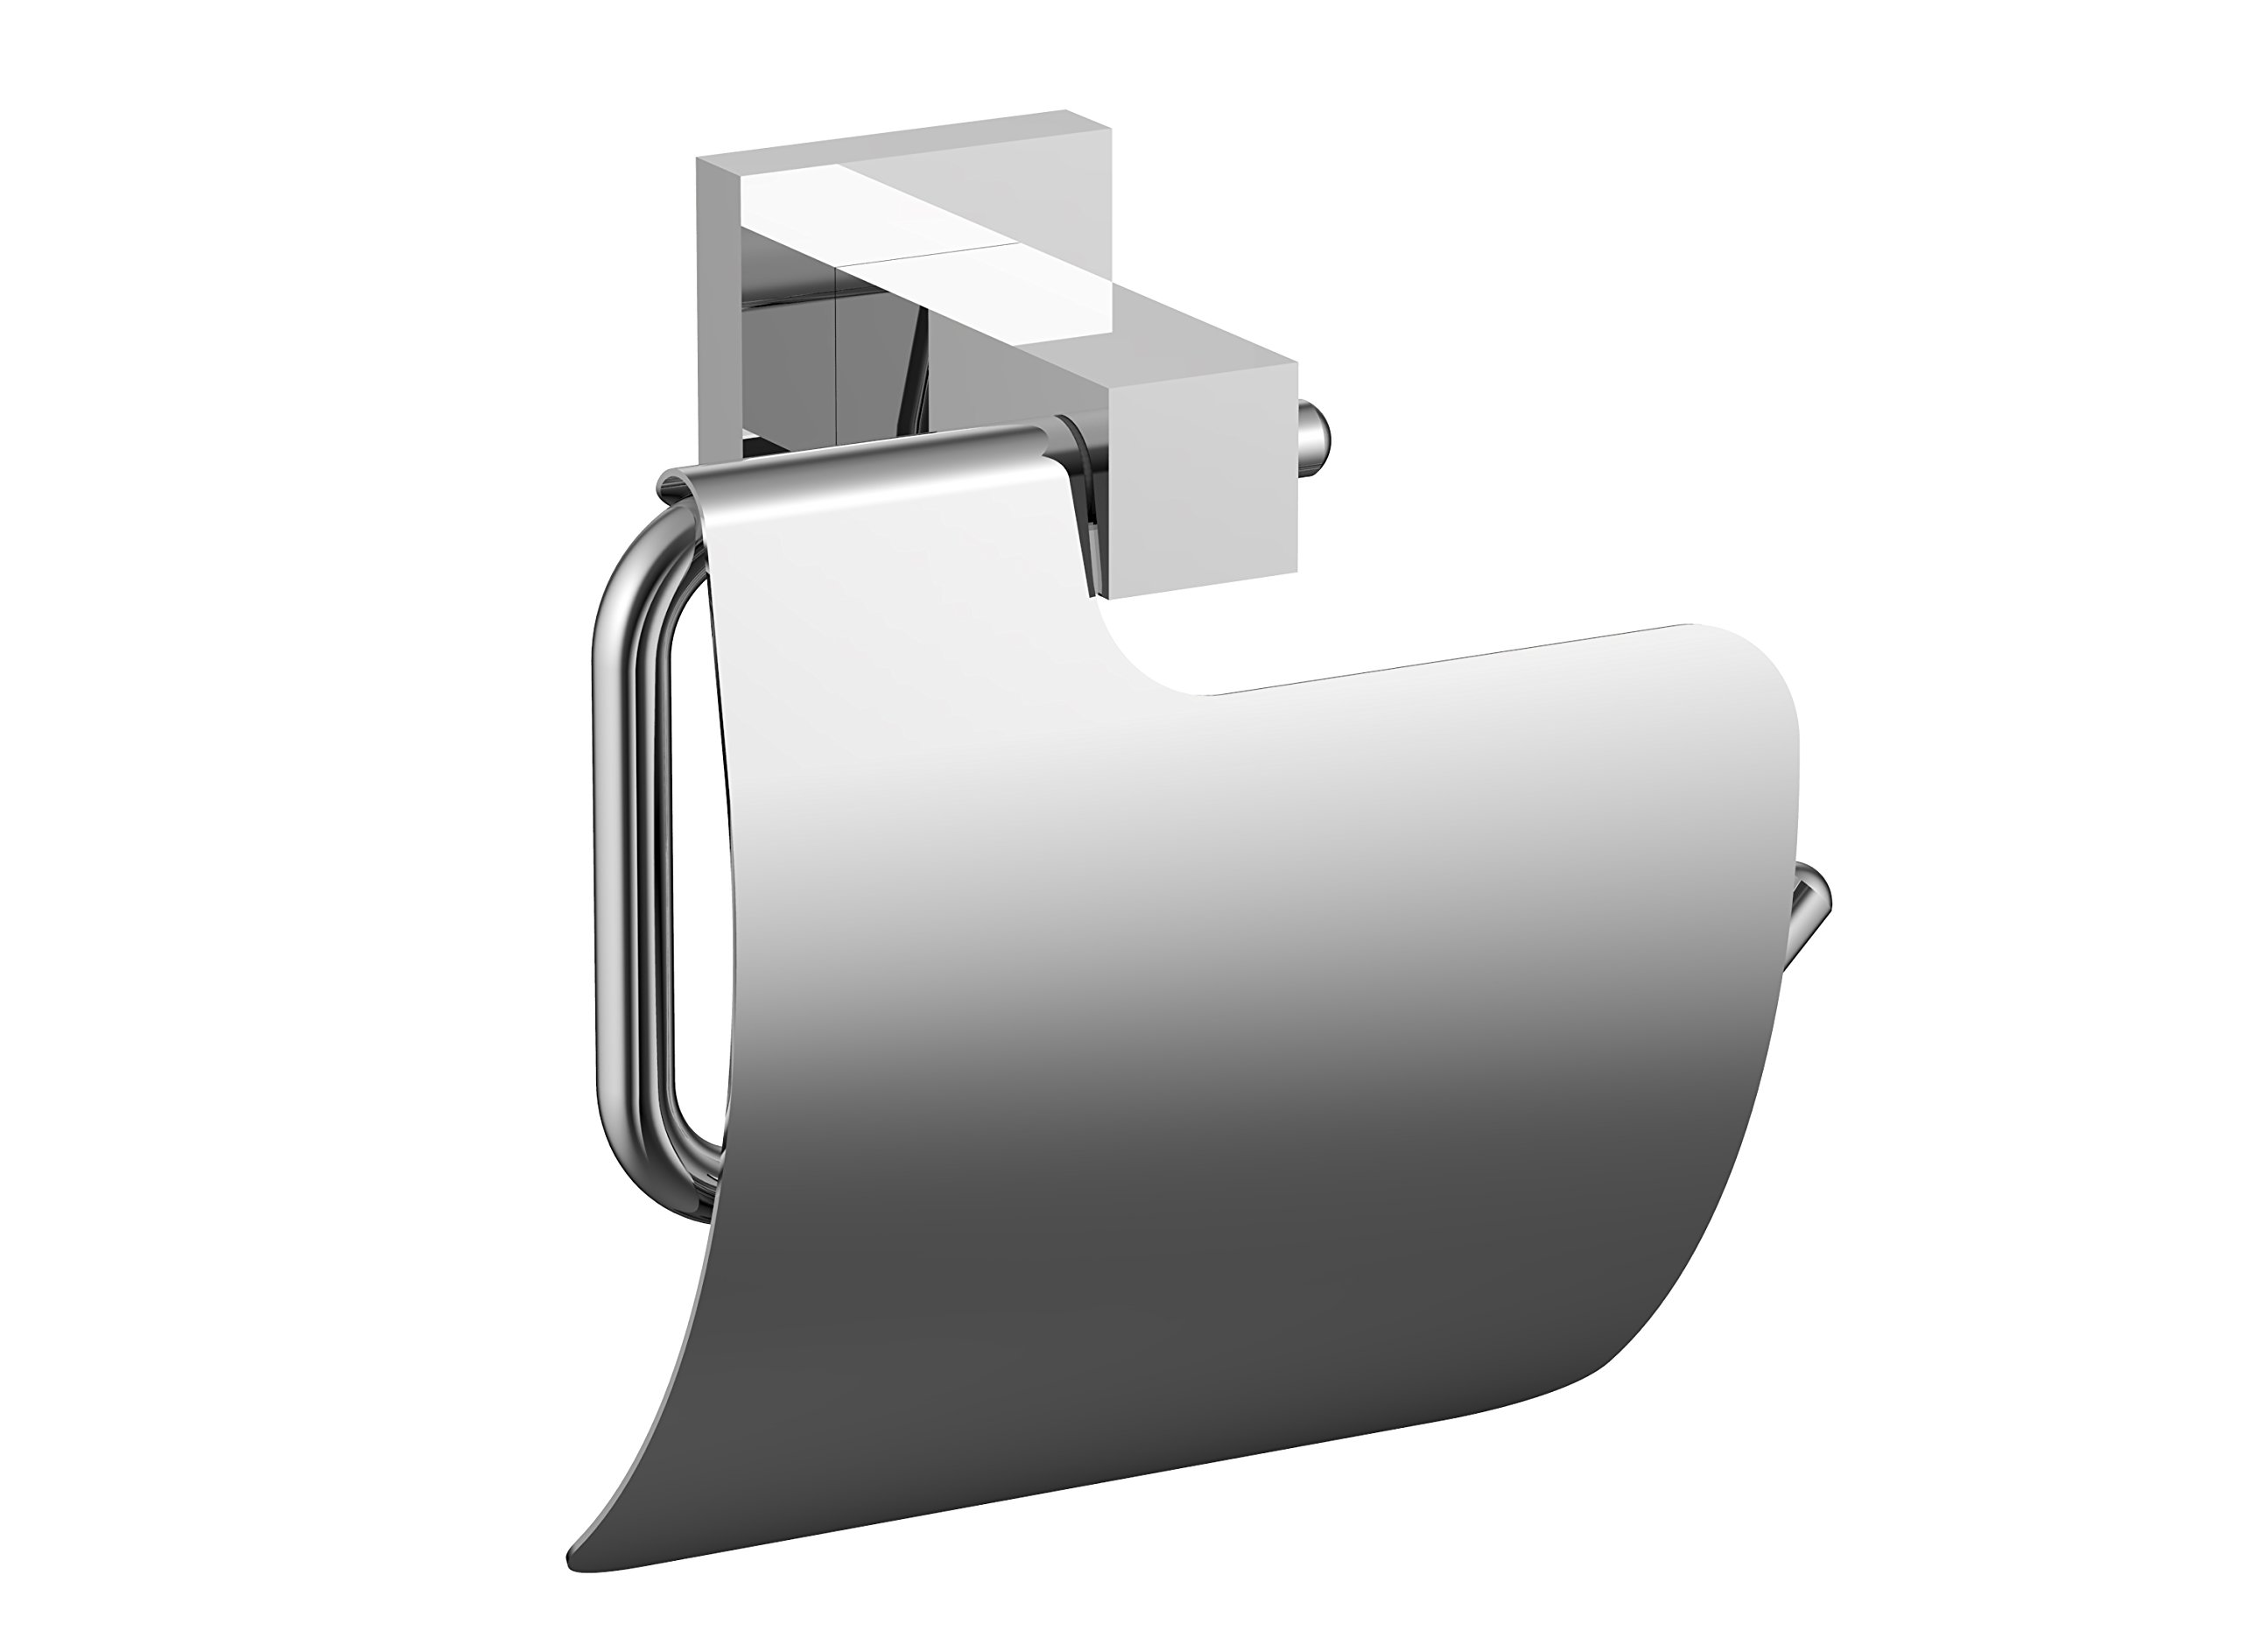 Eviva EVAC62CH Toilet Paper Holdy Toilet Paper Holder Bathroom Accessories Combination, Chrome